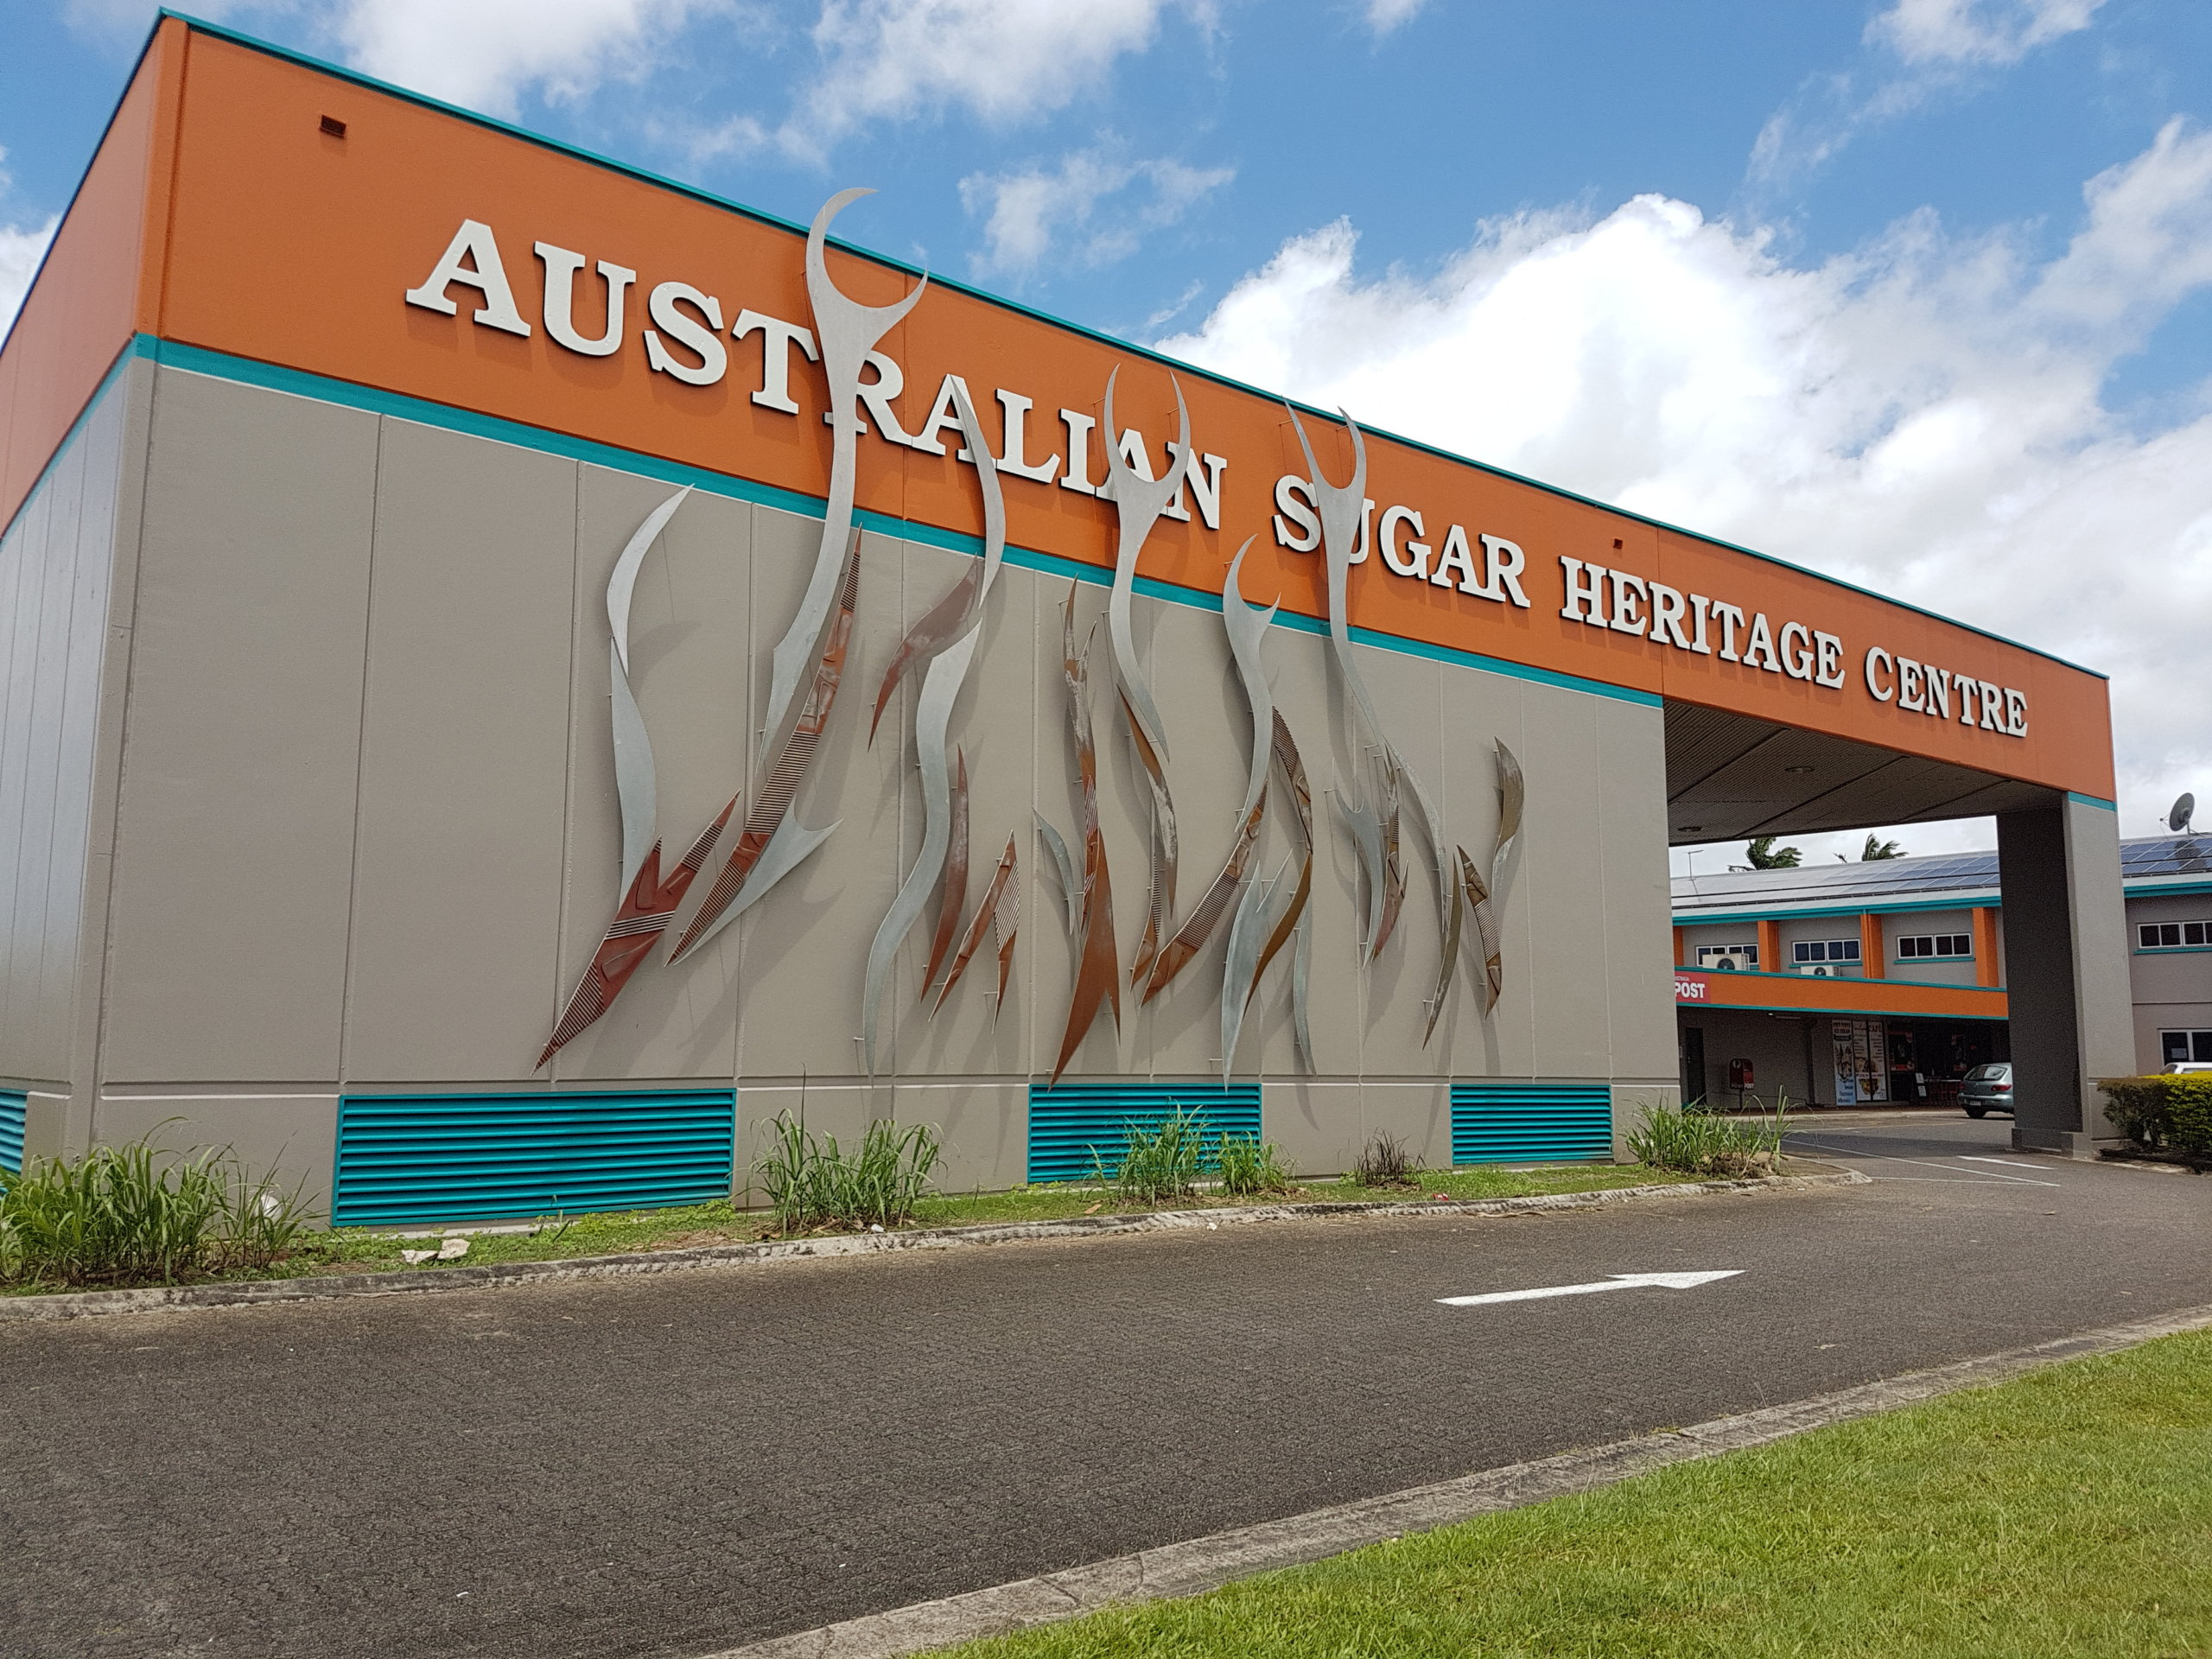 An outside view of the Australian Sugar Heritage Centre